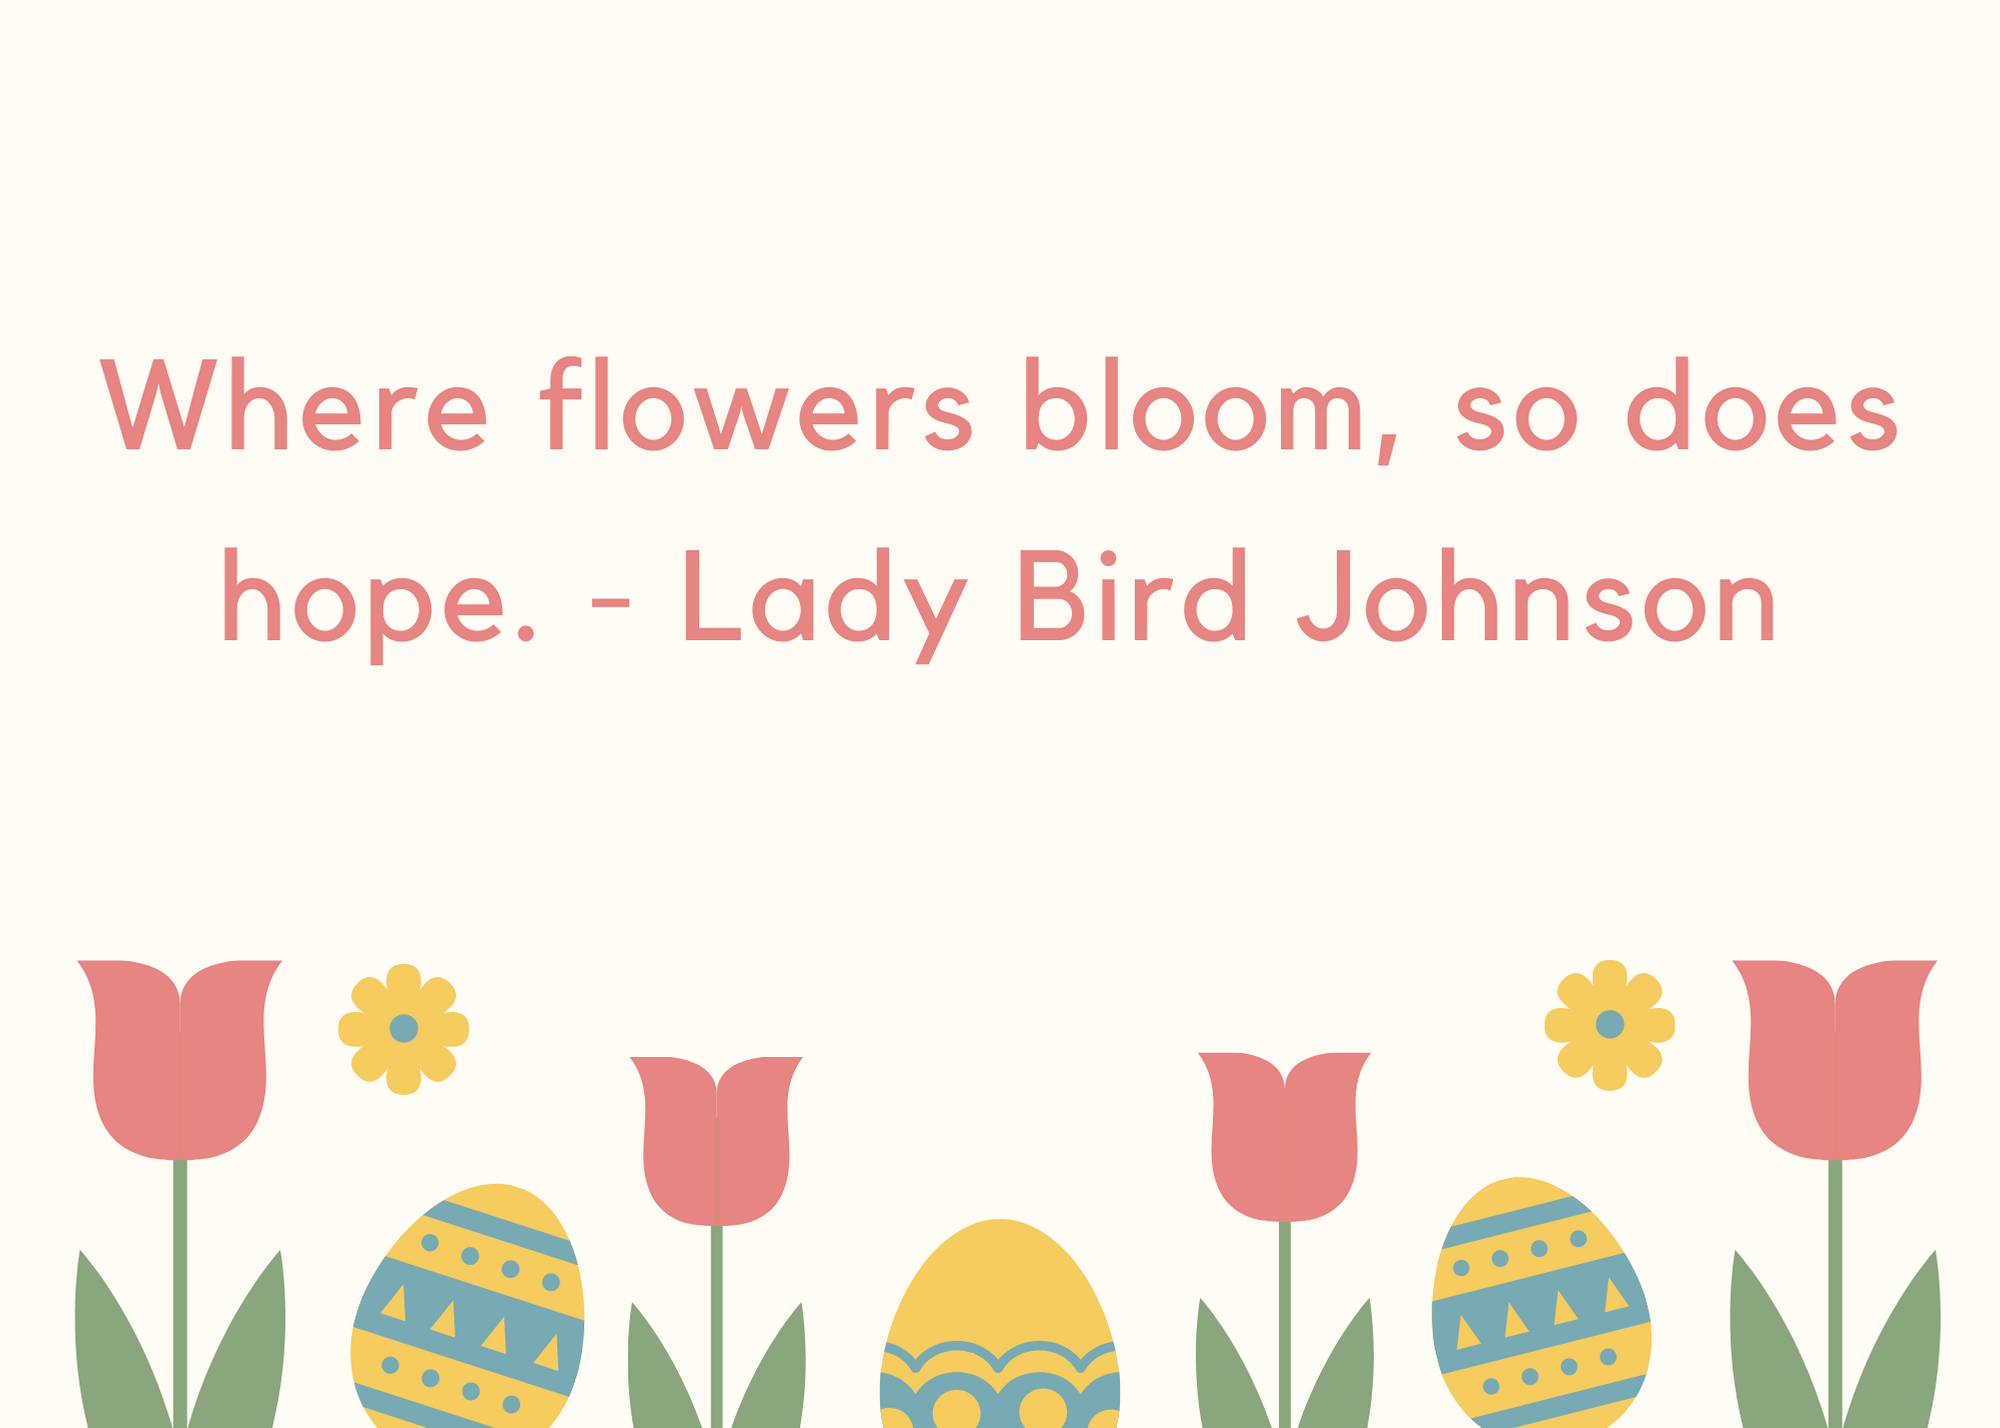 Where flowers bloom, so does hope. - Lady Bird Johnson